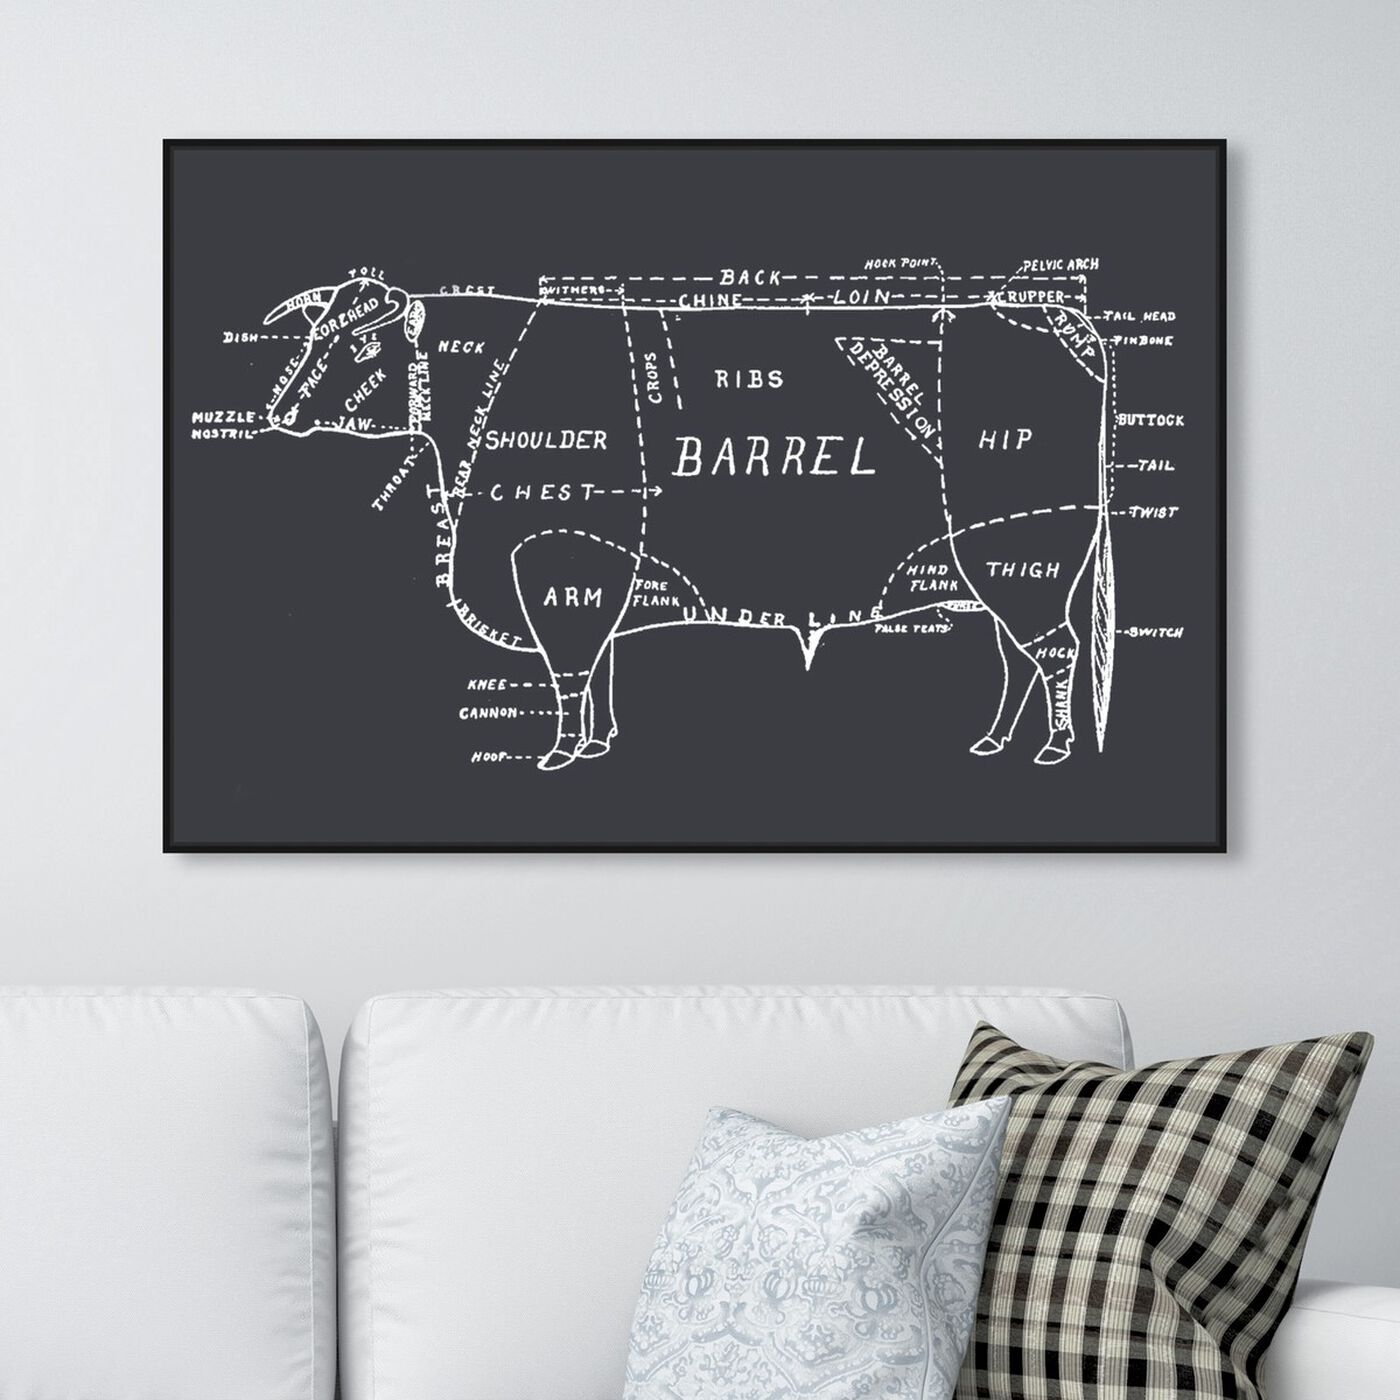 Hanging view of Beef featuring food and cuisine and food art.